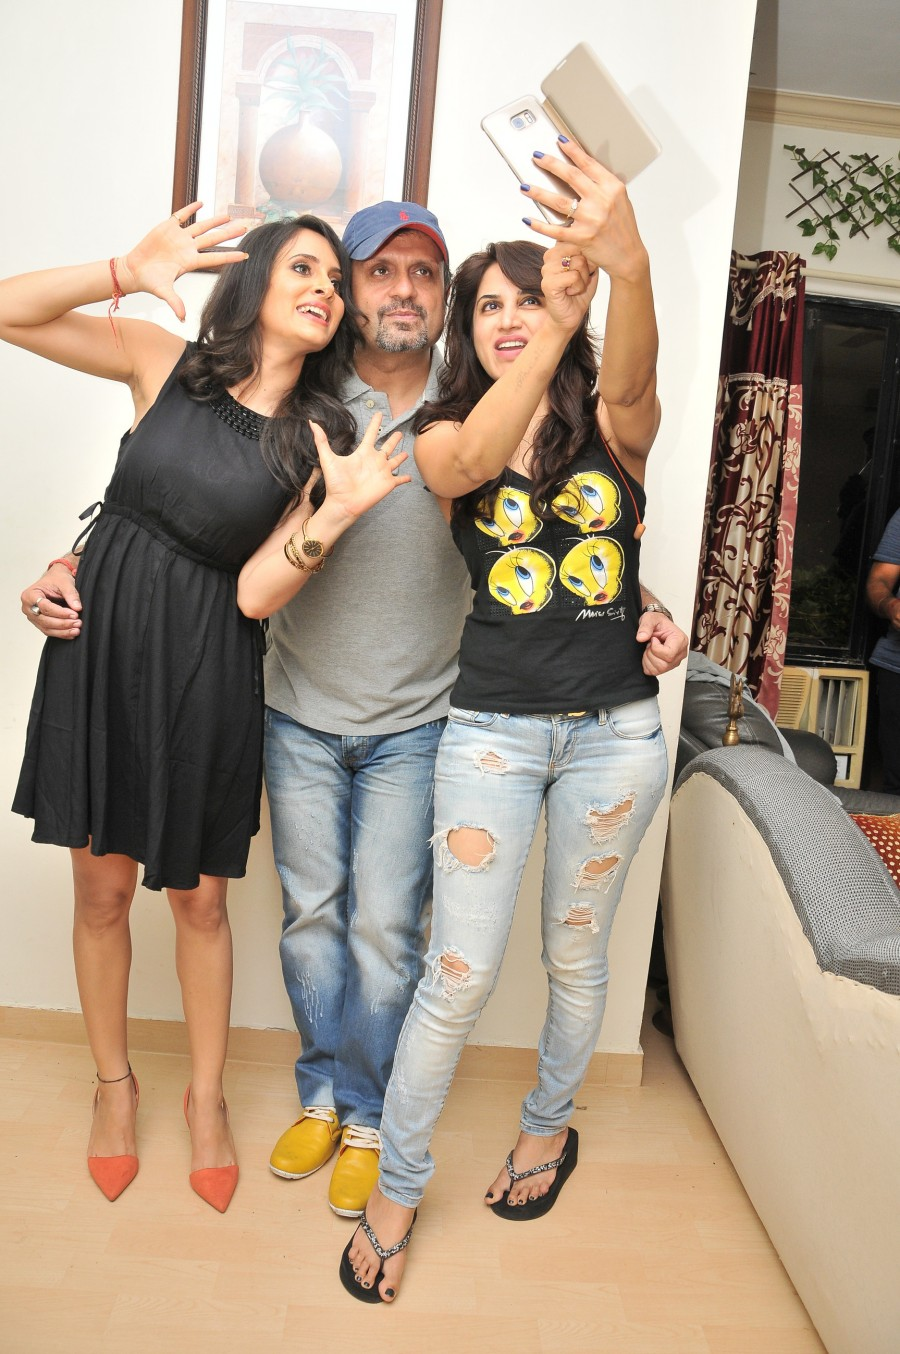 Dj Sheizwood,Dj Sheizwood Birthday Bash,Dj Sheizwood Birthday Bash pictures,Dj Sheizwood Birthday Bash pics,Dj Sheizwood Birthday Bash stills,Dj Sheizwood Birthday Bash photos,Dj Sheizwood Birthday celebrations,Dj Sheizwood Birthday celebrations pics,Dj S